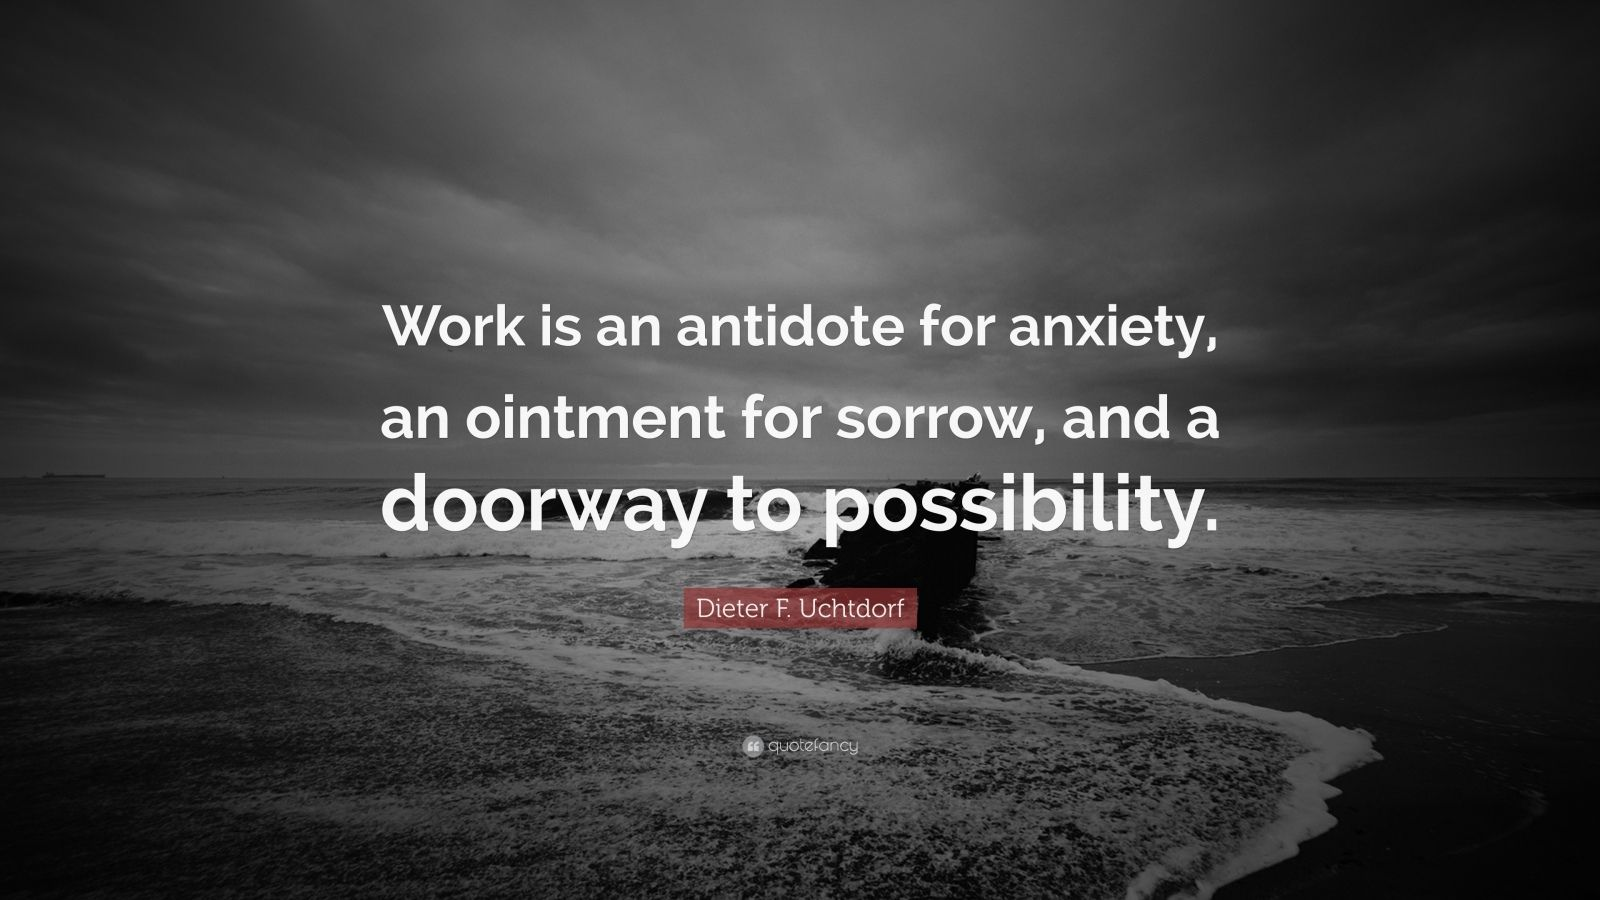 "Dieter F. Uchtdorf Quote: ""Work is an antidote for anxiety, an ointment for sorrow, and a doorway to possibility."""